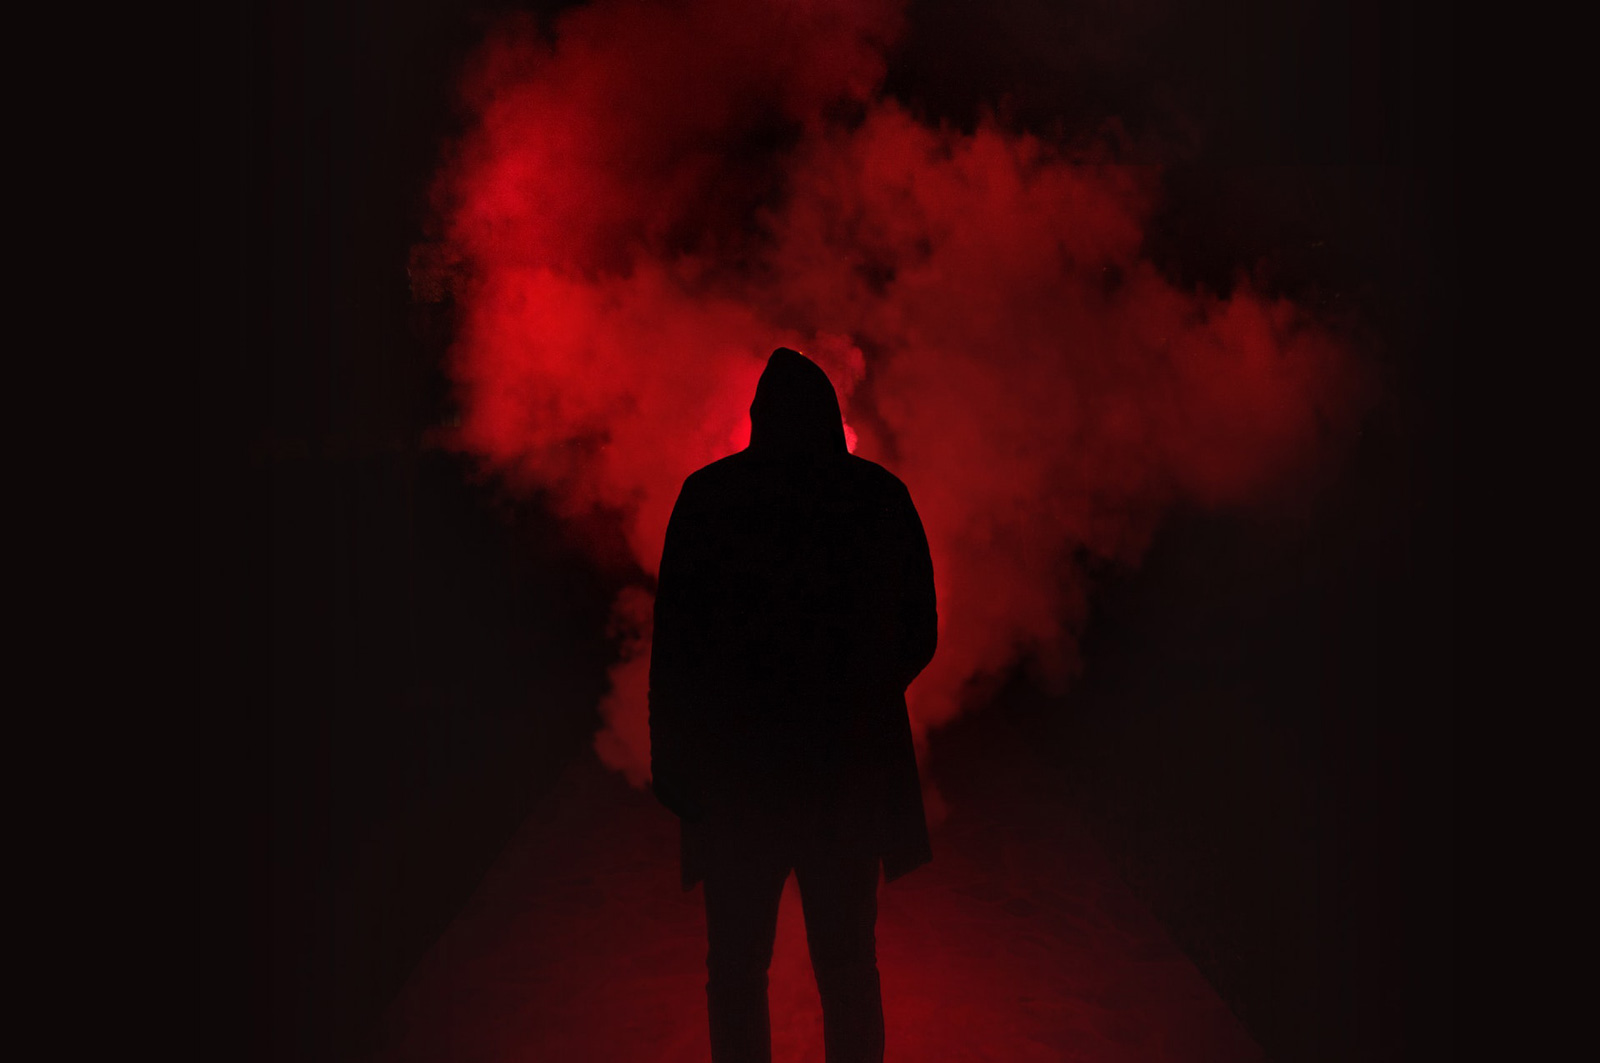 Image of a man's silhouette in a red dark scene